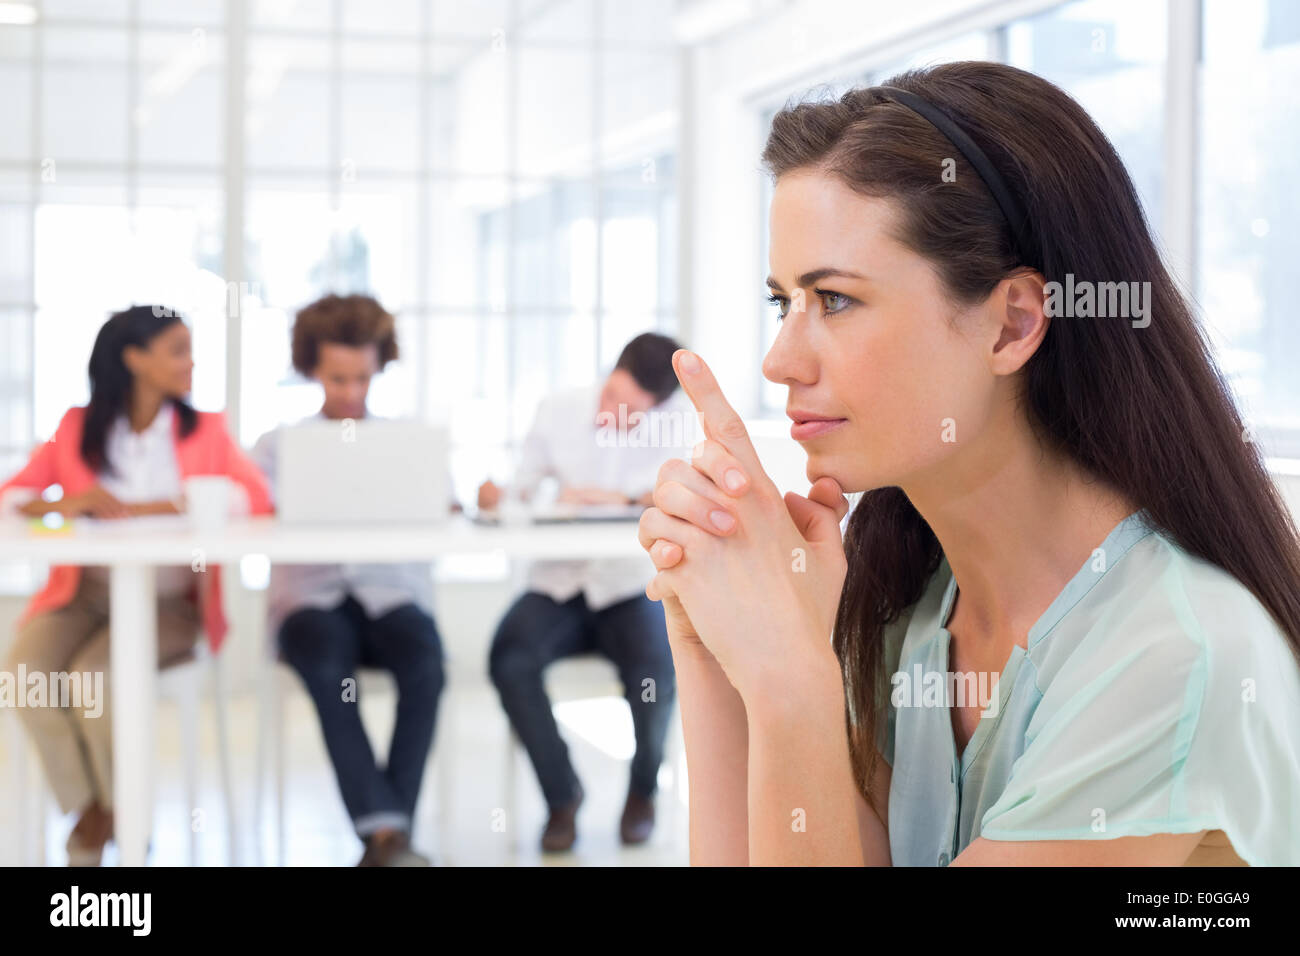 Attractive businesswoman concentrating and focusing - Stock Image